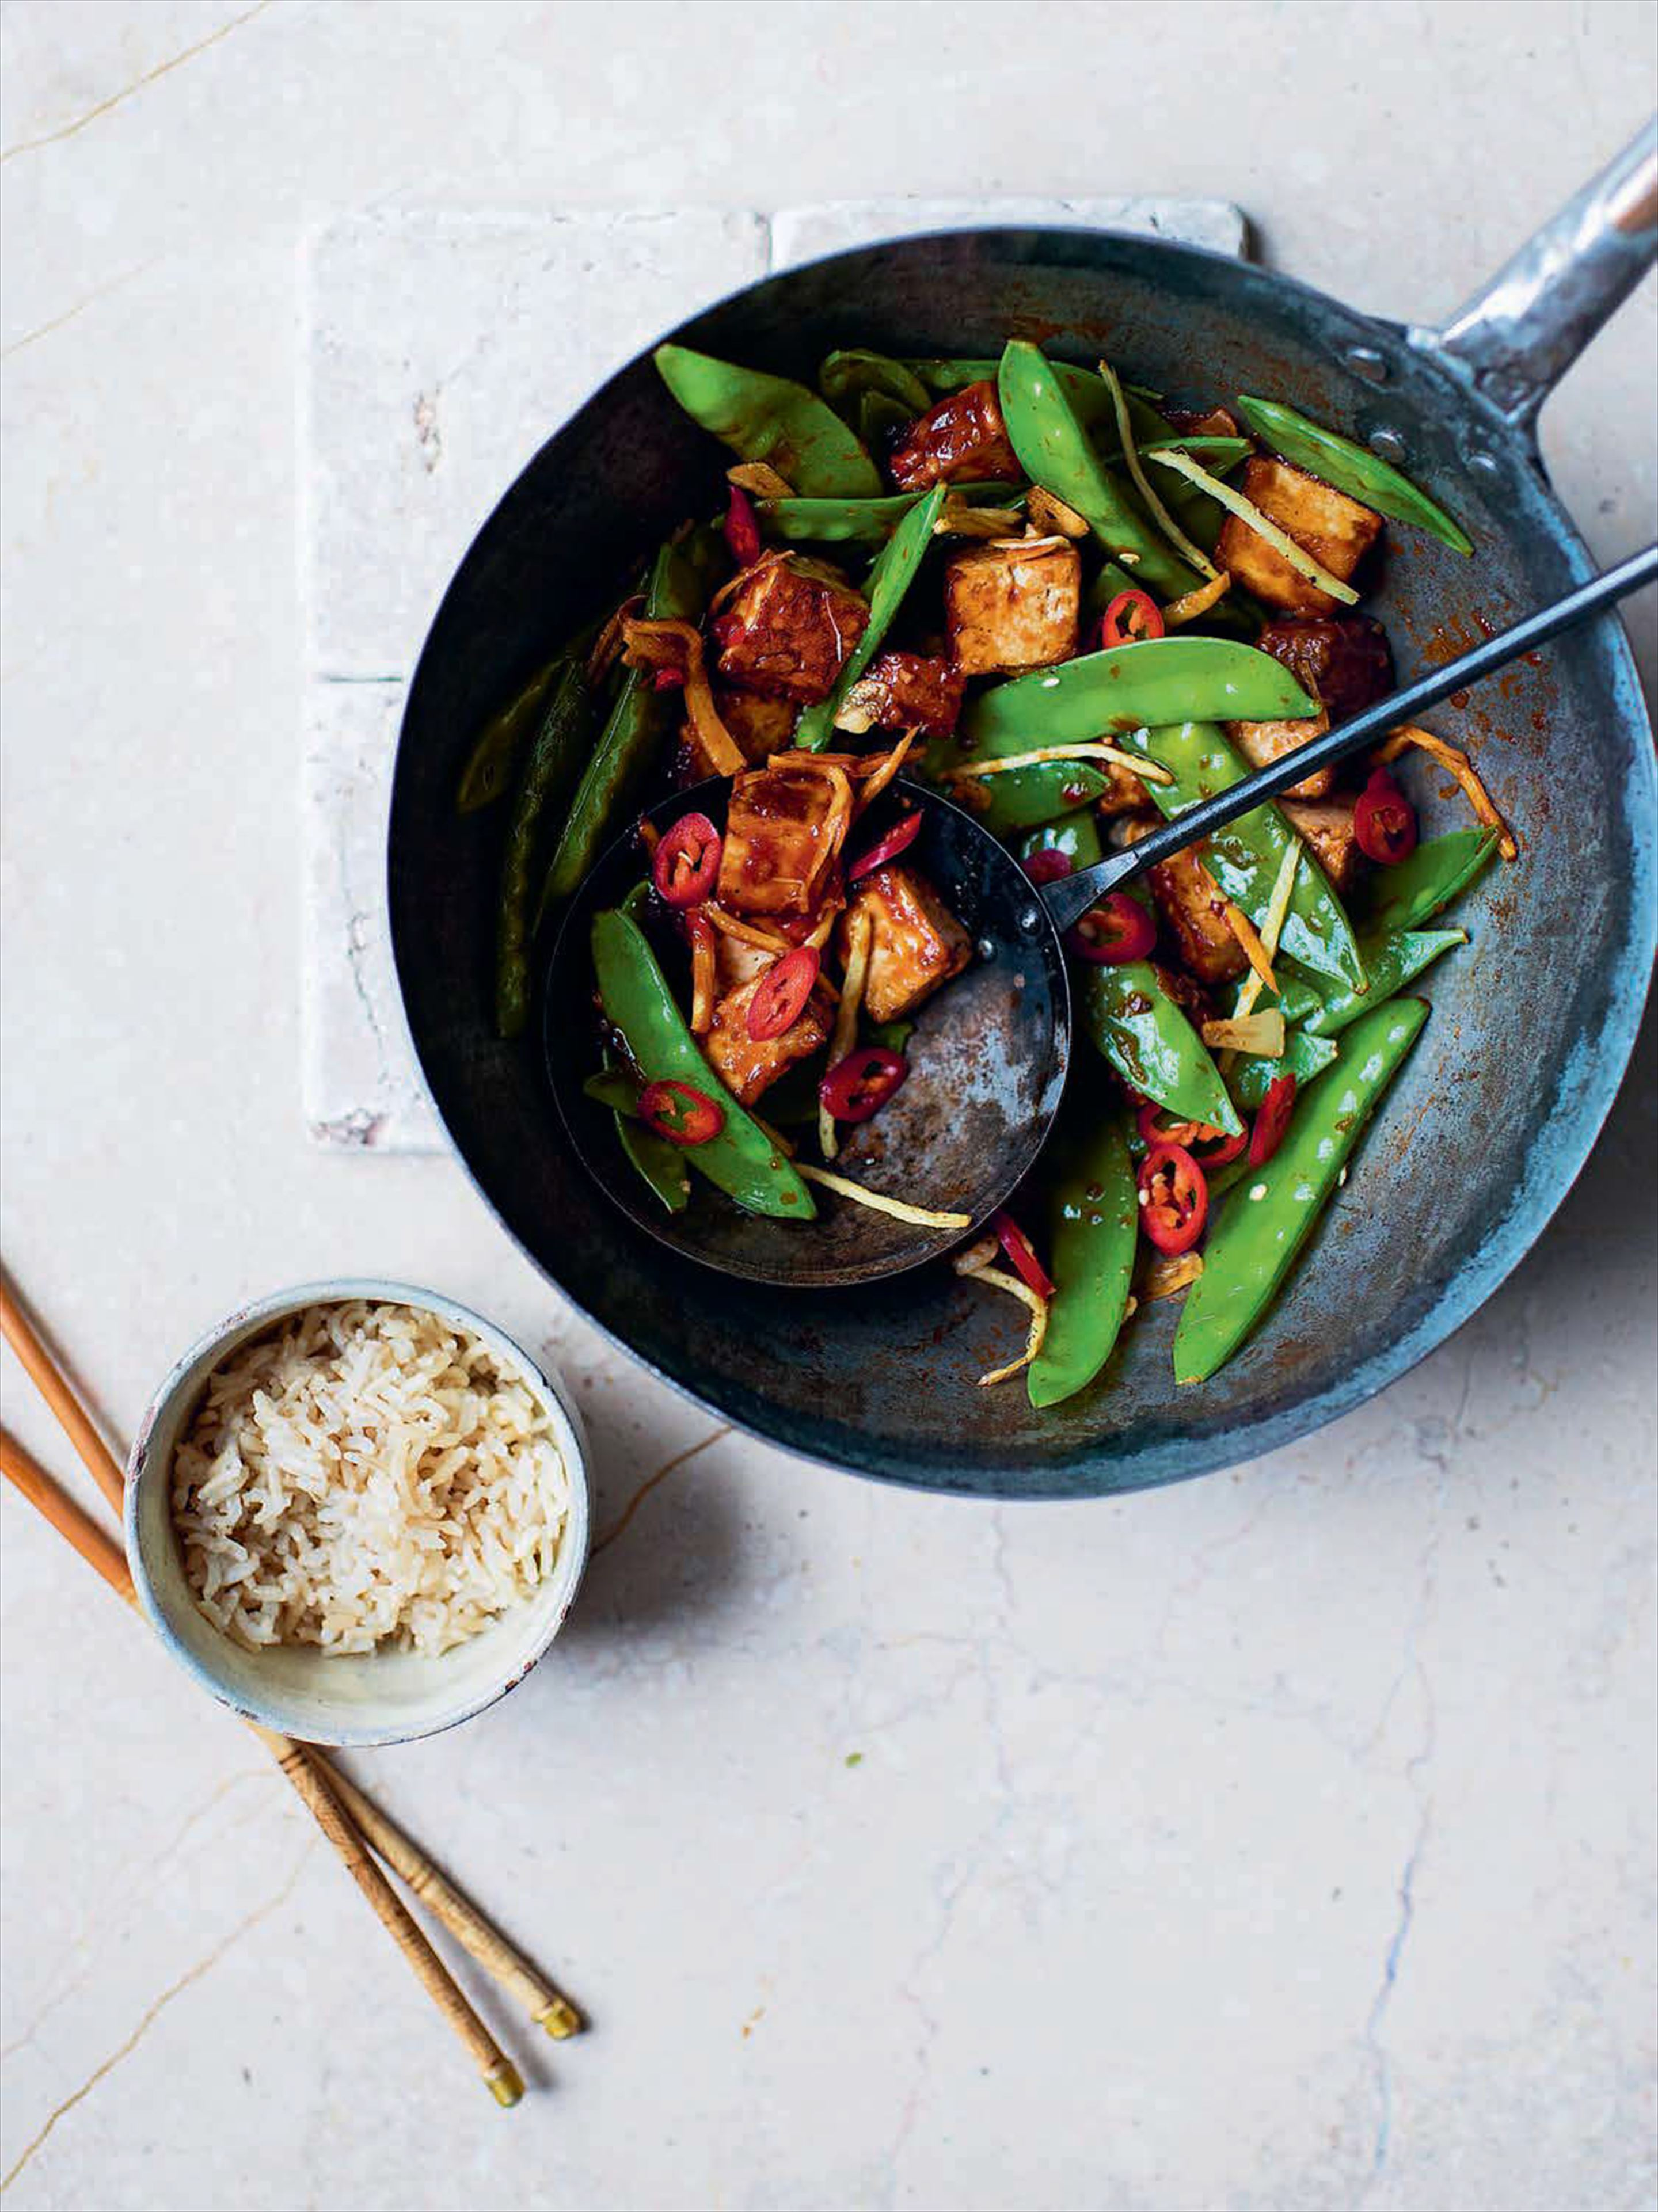 Szechuan tofu and mangetout stir-fry